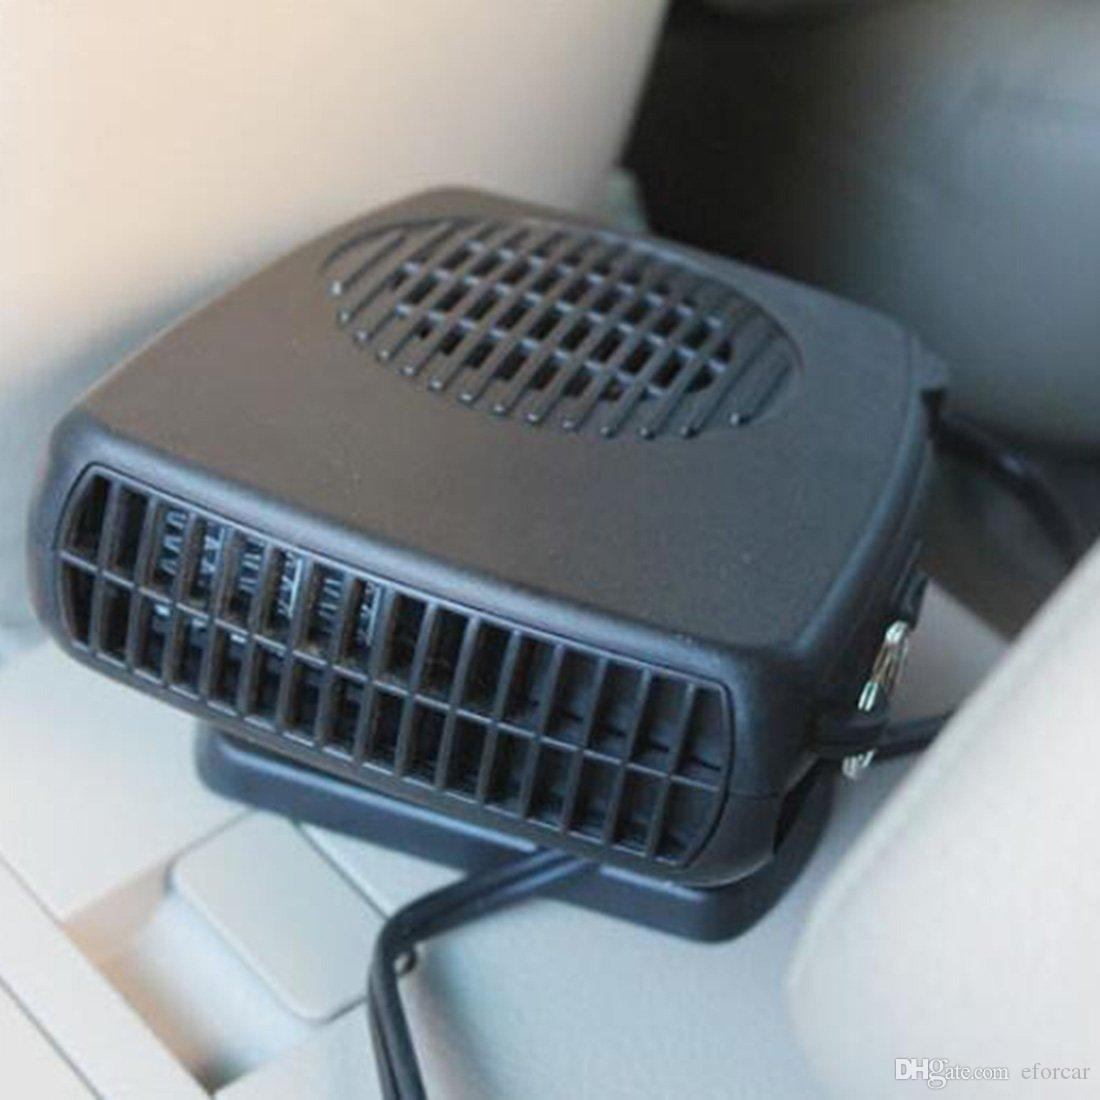 Auto Car Portable Dryer Heater Fan Defroster Demister DC 12V Car Electronic Tool